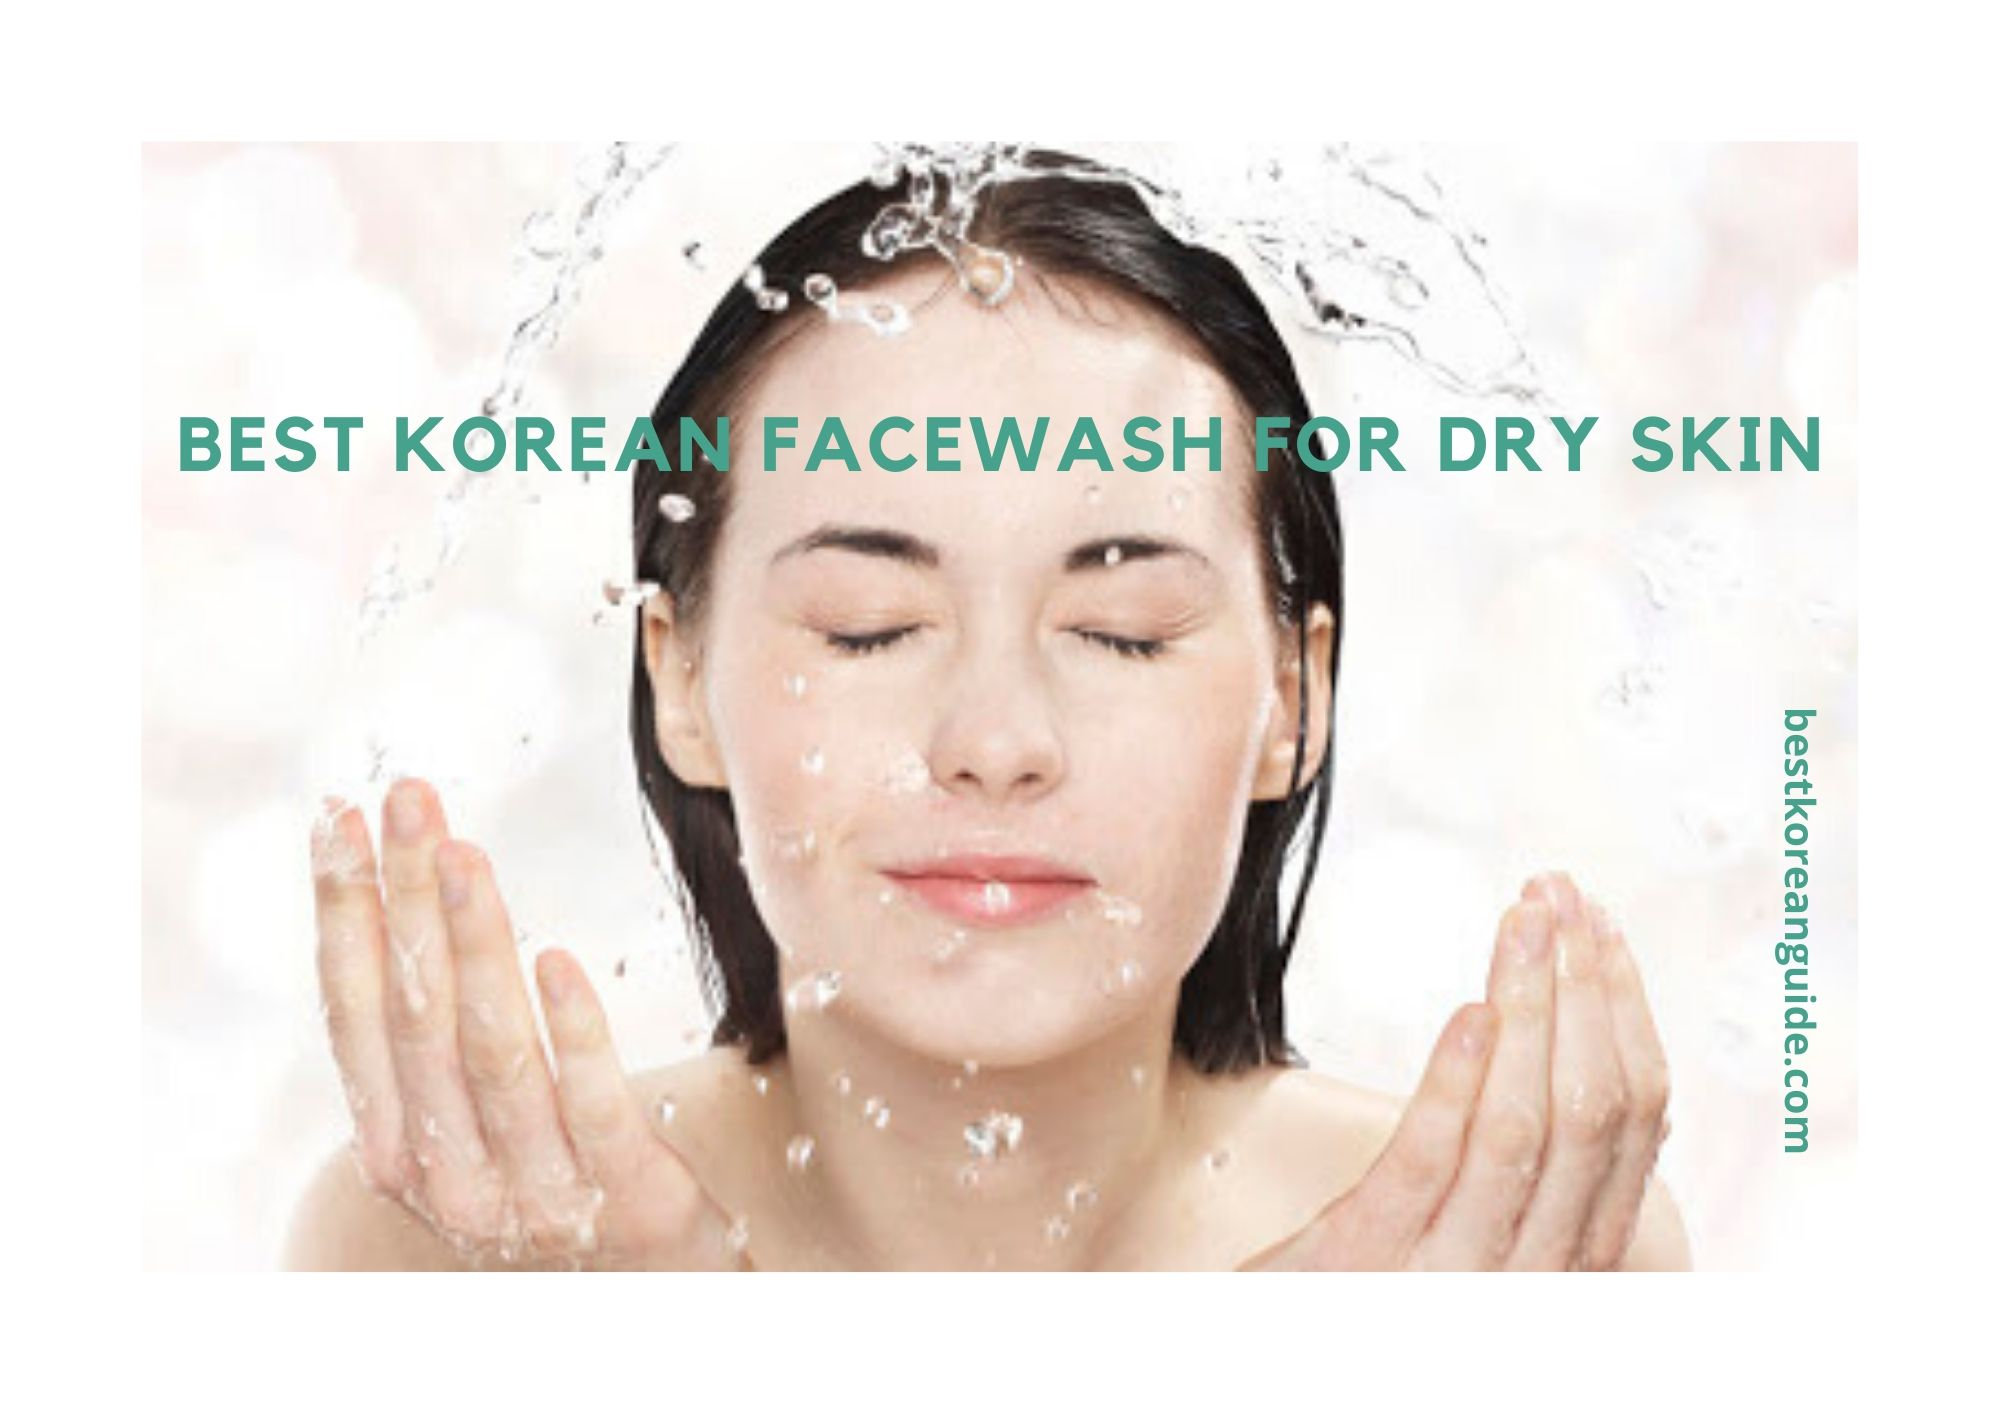 Best Korean facewash for dry skin